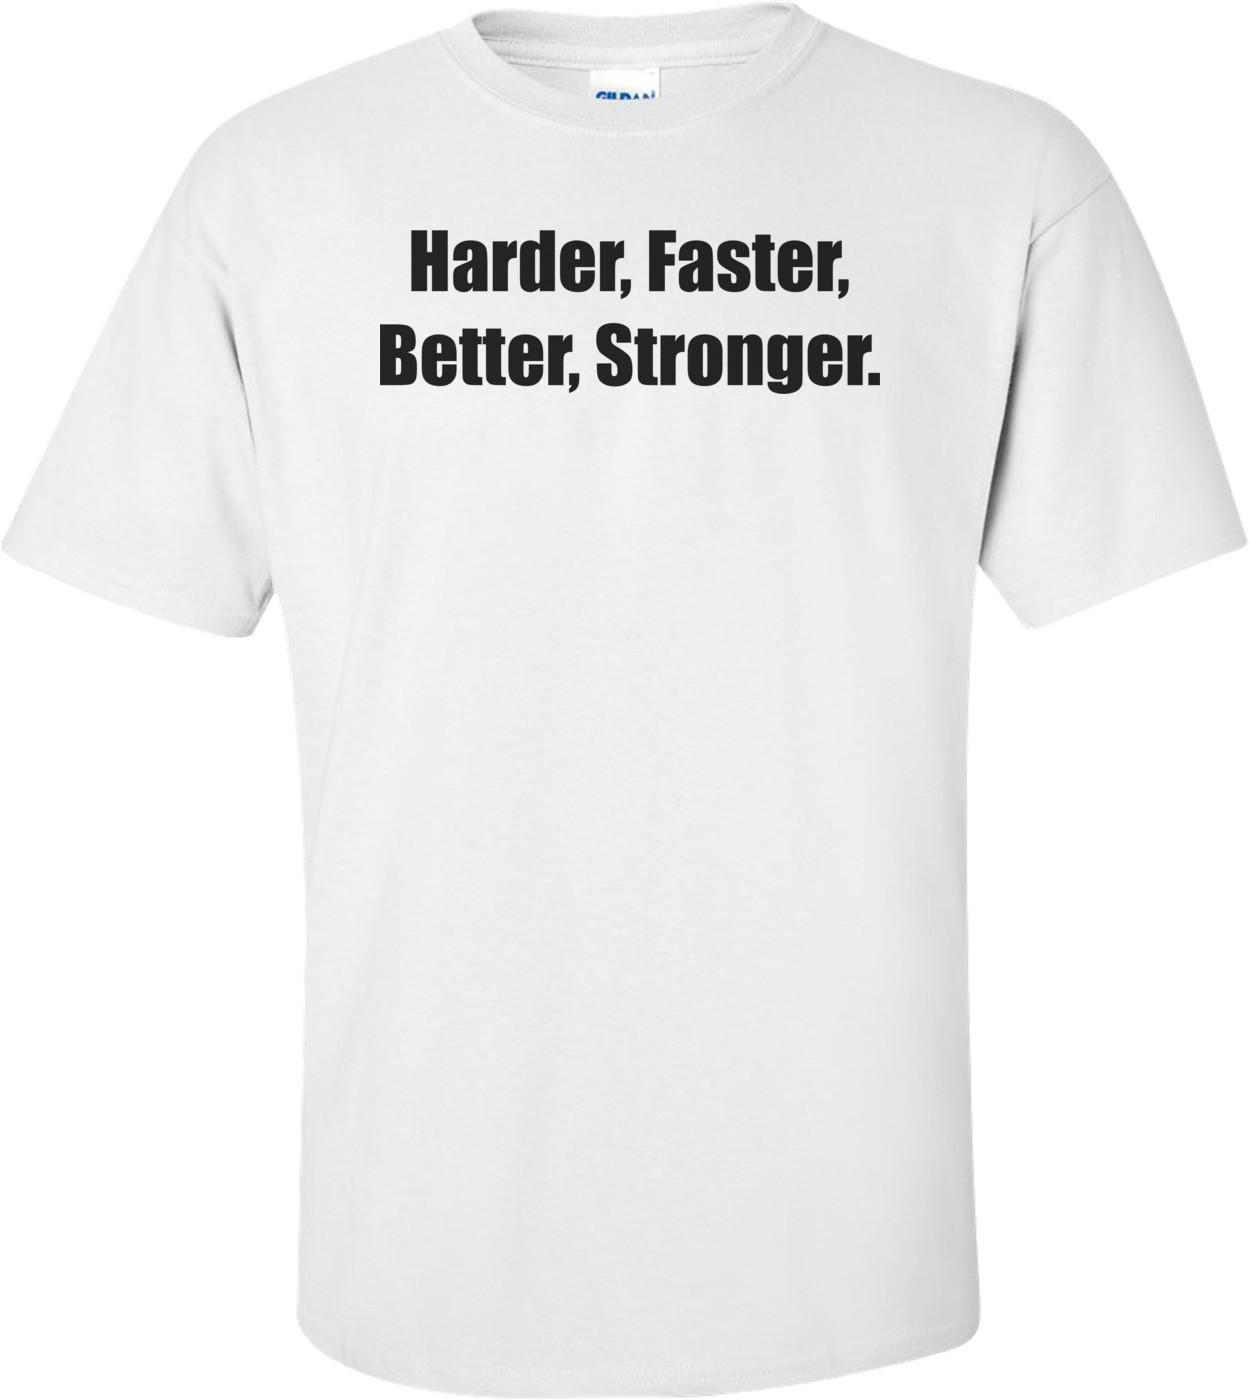 Harder, Faster, Better, Stronger. Shirt